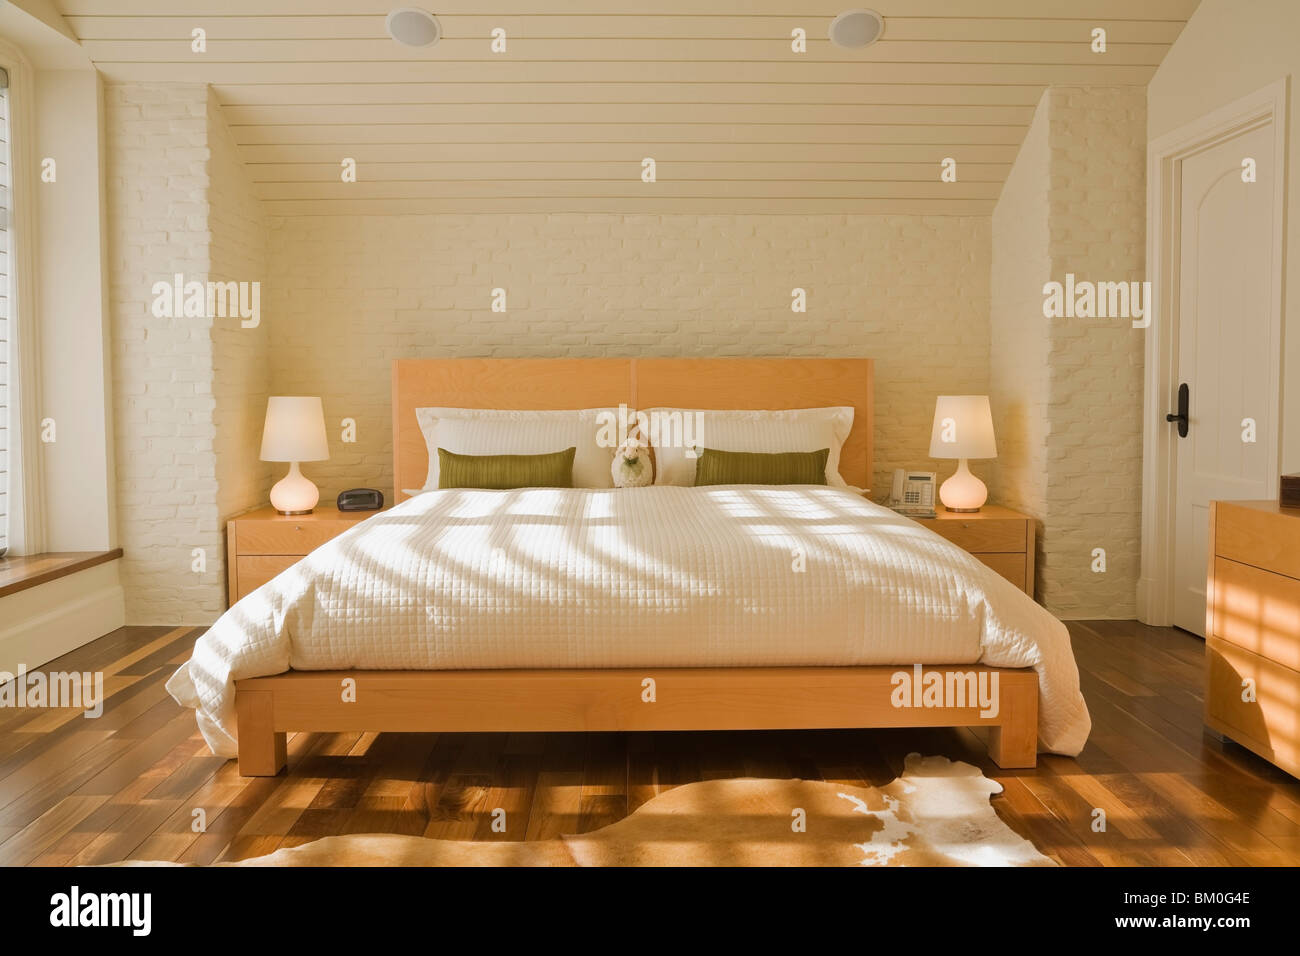 Master Bedroom with King-Size Bed in Luxurious Home - Stock Image